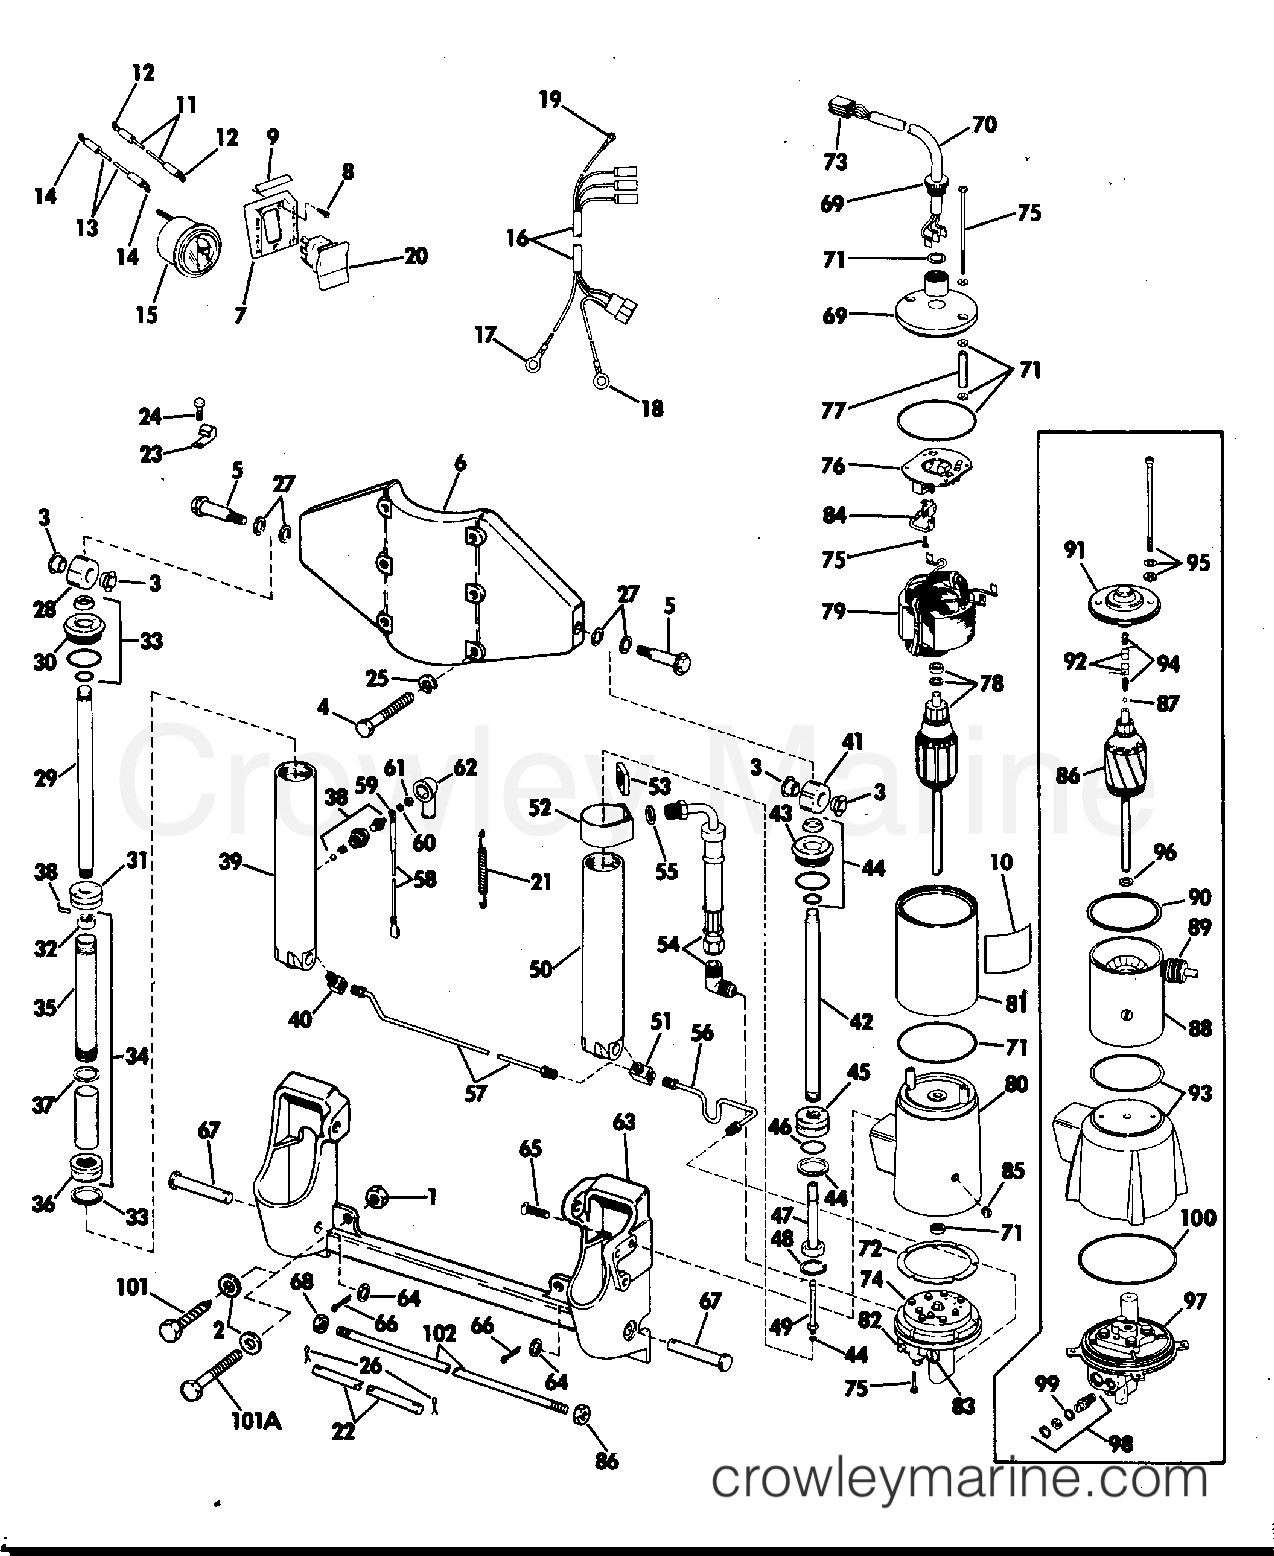 Evinrude outboard parts diagram power tilt and trim 50 hp 1974 rigging parts accessories of evinrude